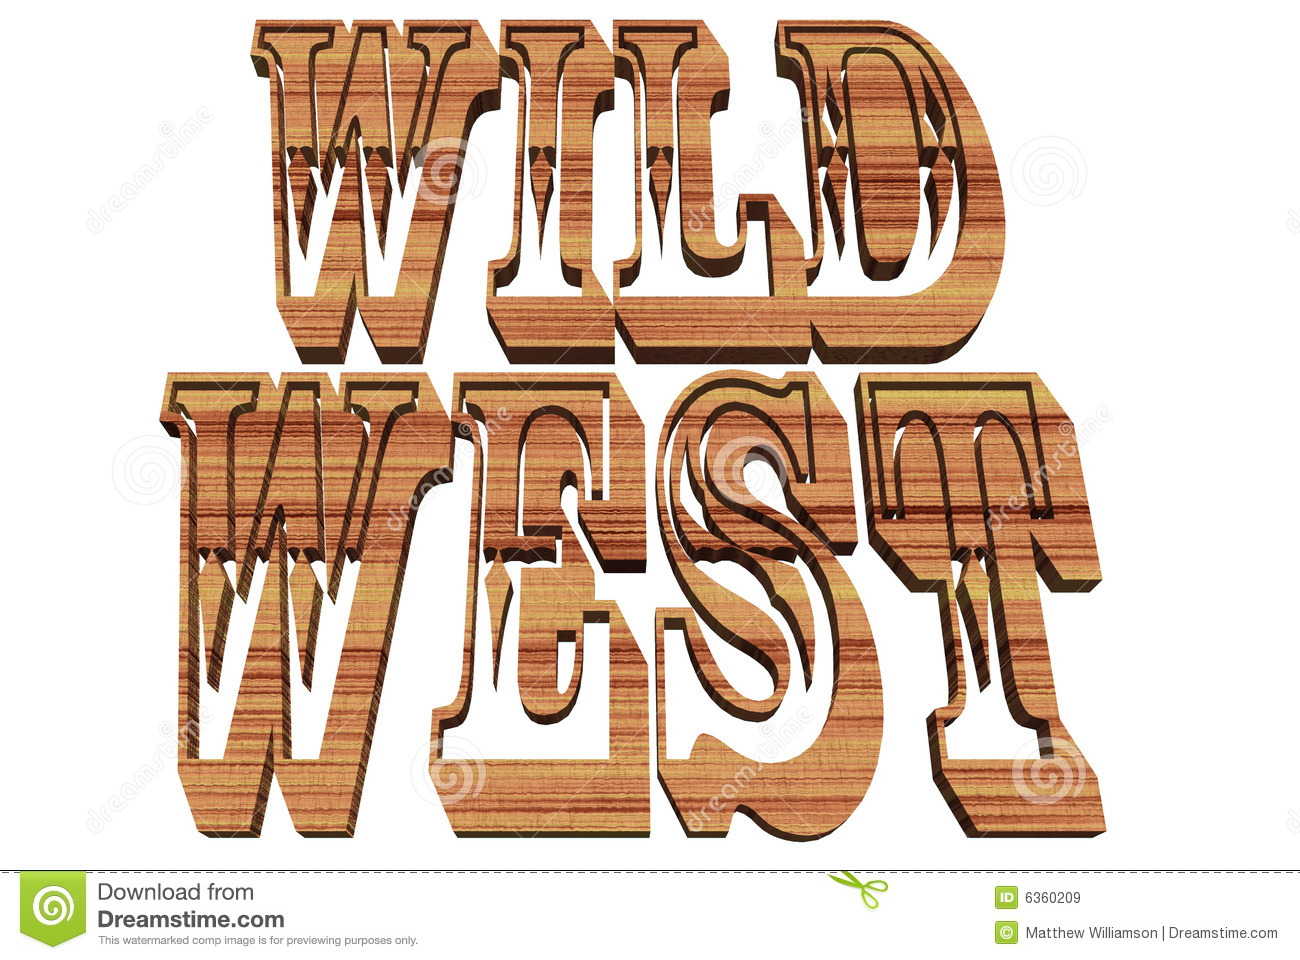 Watch more like Old West Clip Art